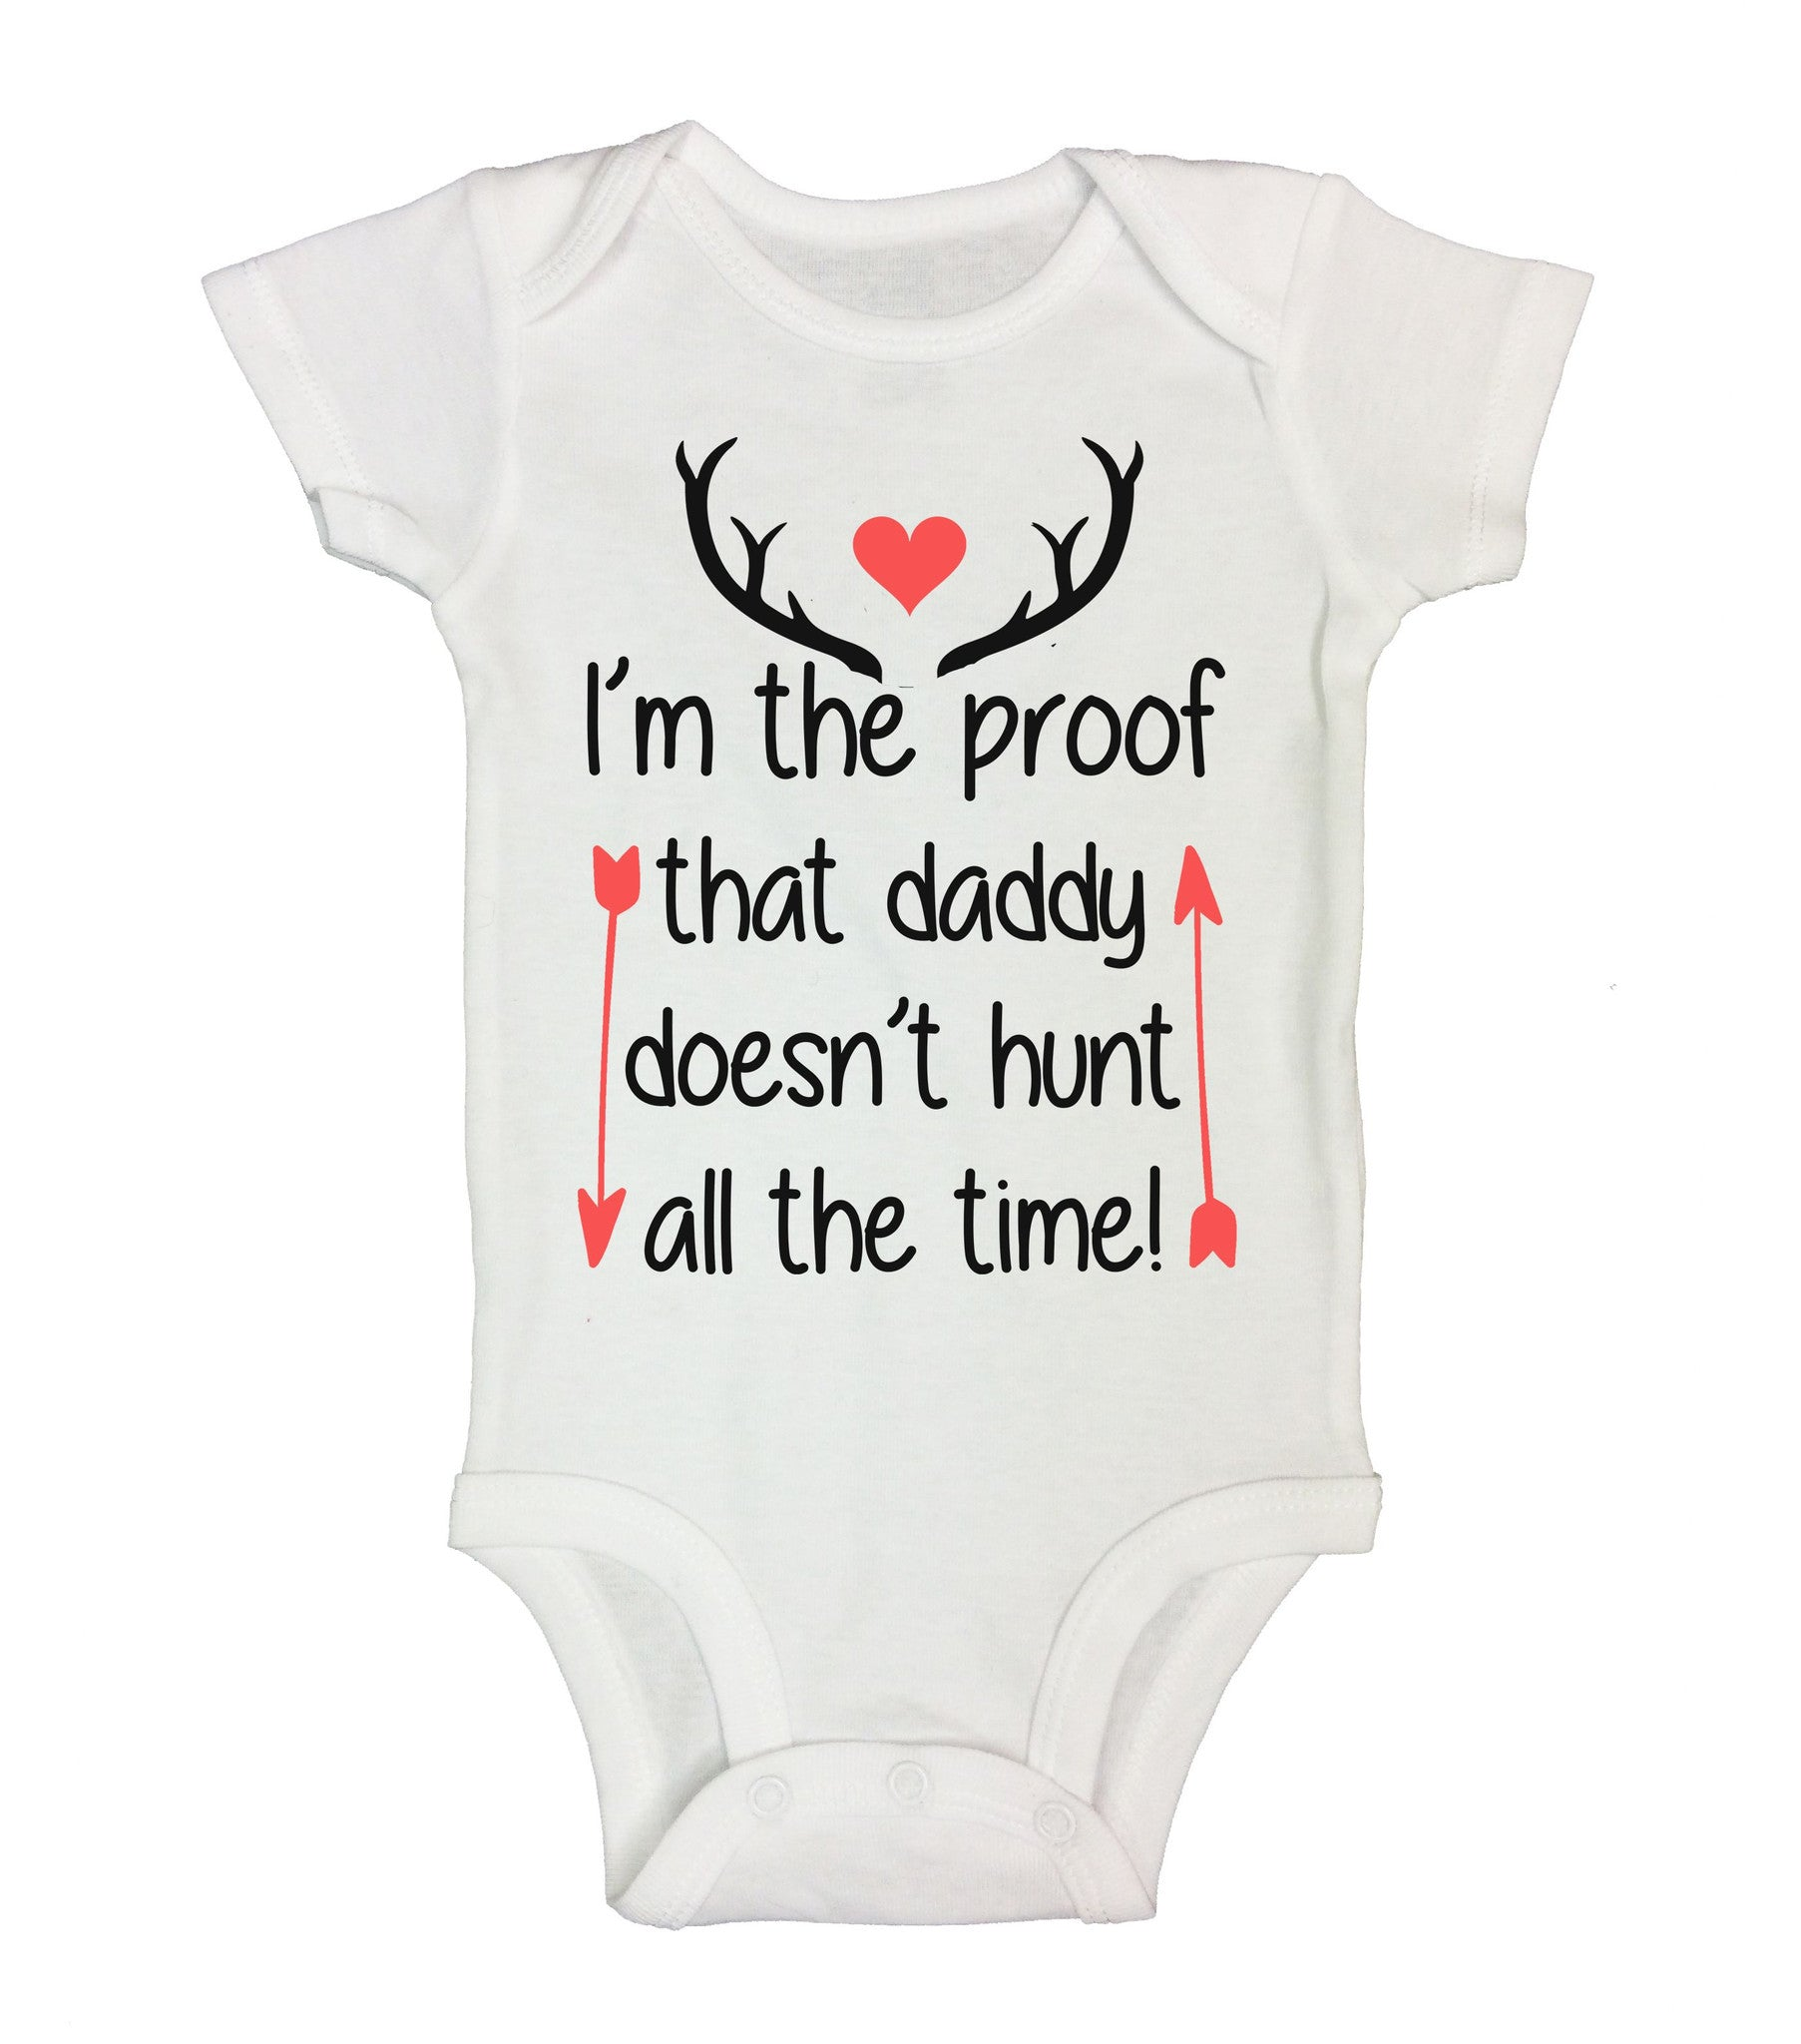 I'm The Proof That Daddy Doesn't Hunt All The Time! Funny Kids Onesie - B207 - Funny Shirts Tank Tops Burnouts and Triblends  - 2